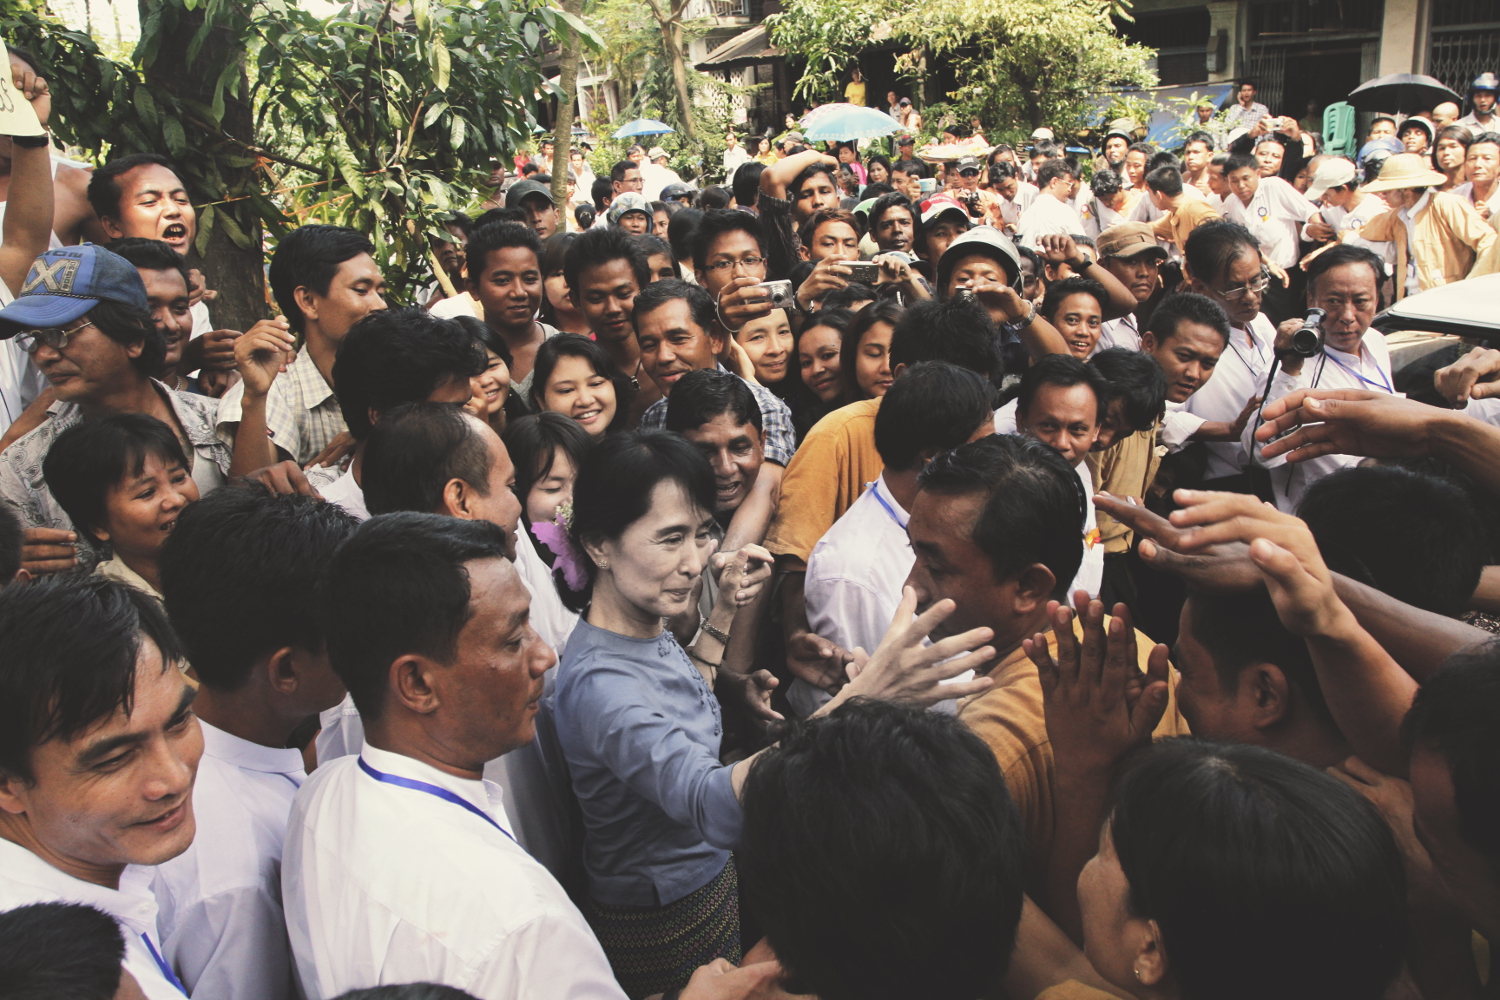 Aung_San_Suu_Kyi_greeting_supporters_from_Bago_State_ed-sat.jpg